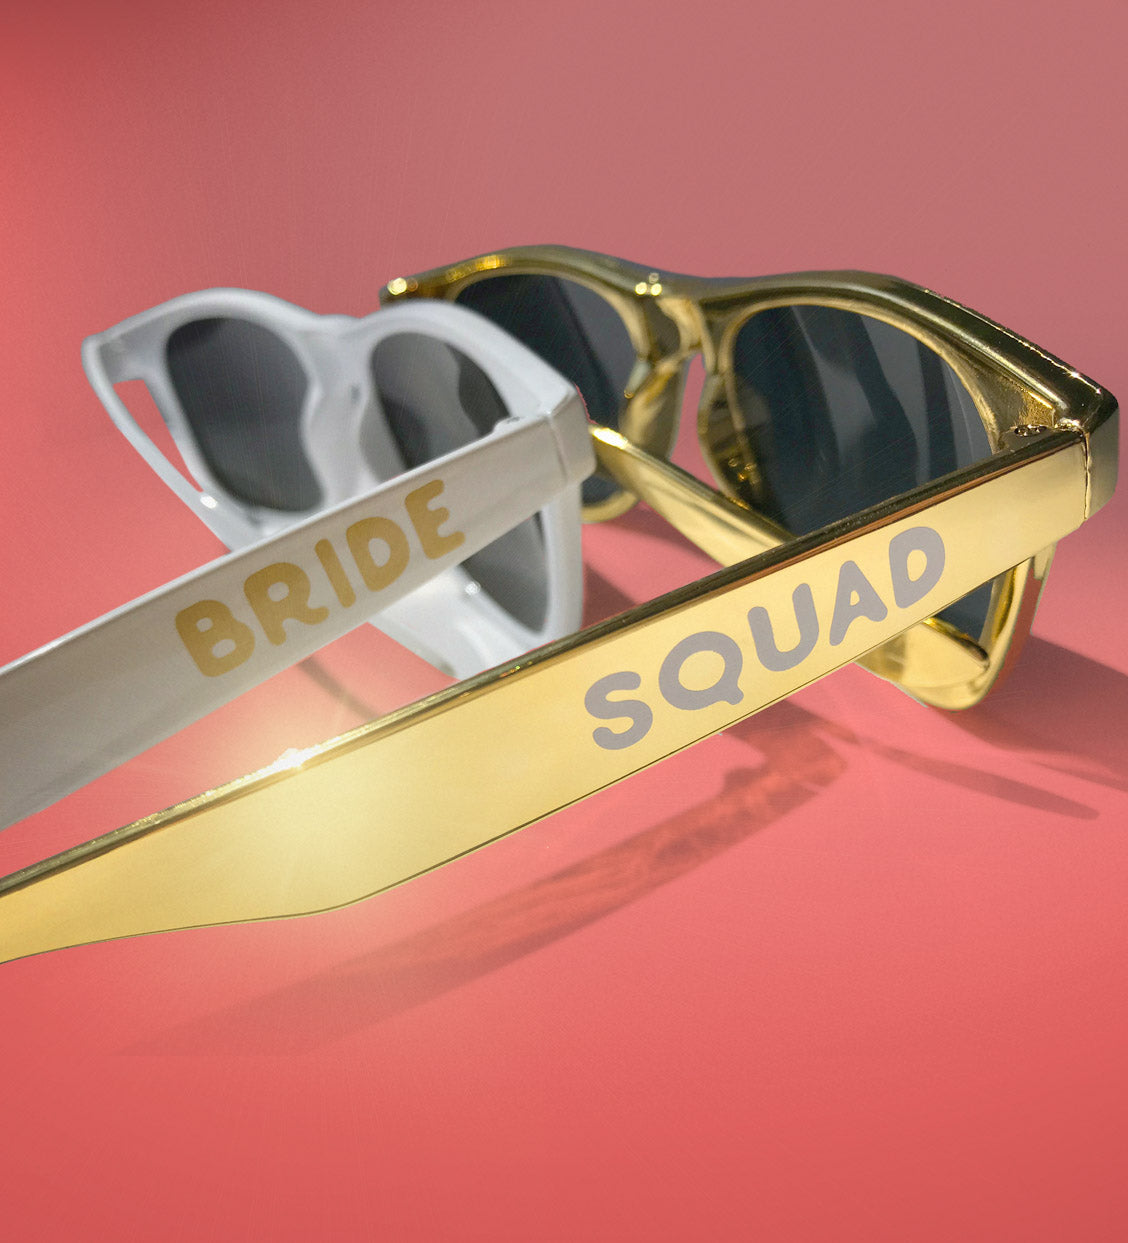 Gold Bride Squad + Bride Sunglasses